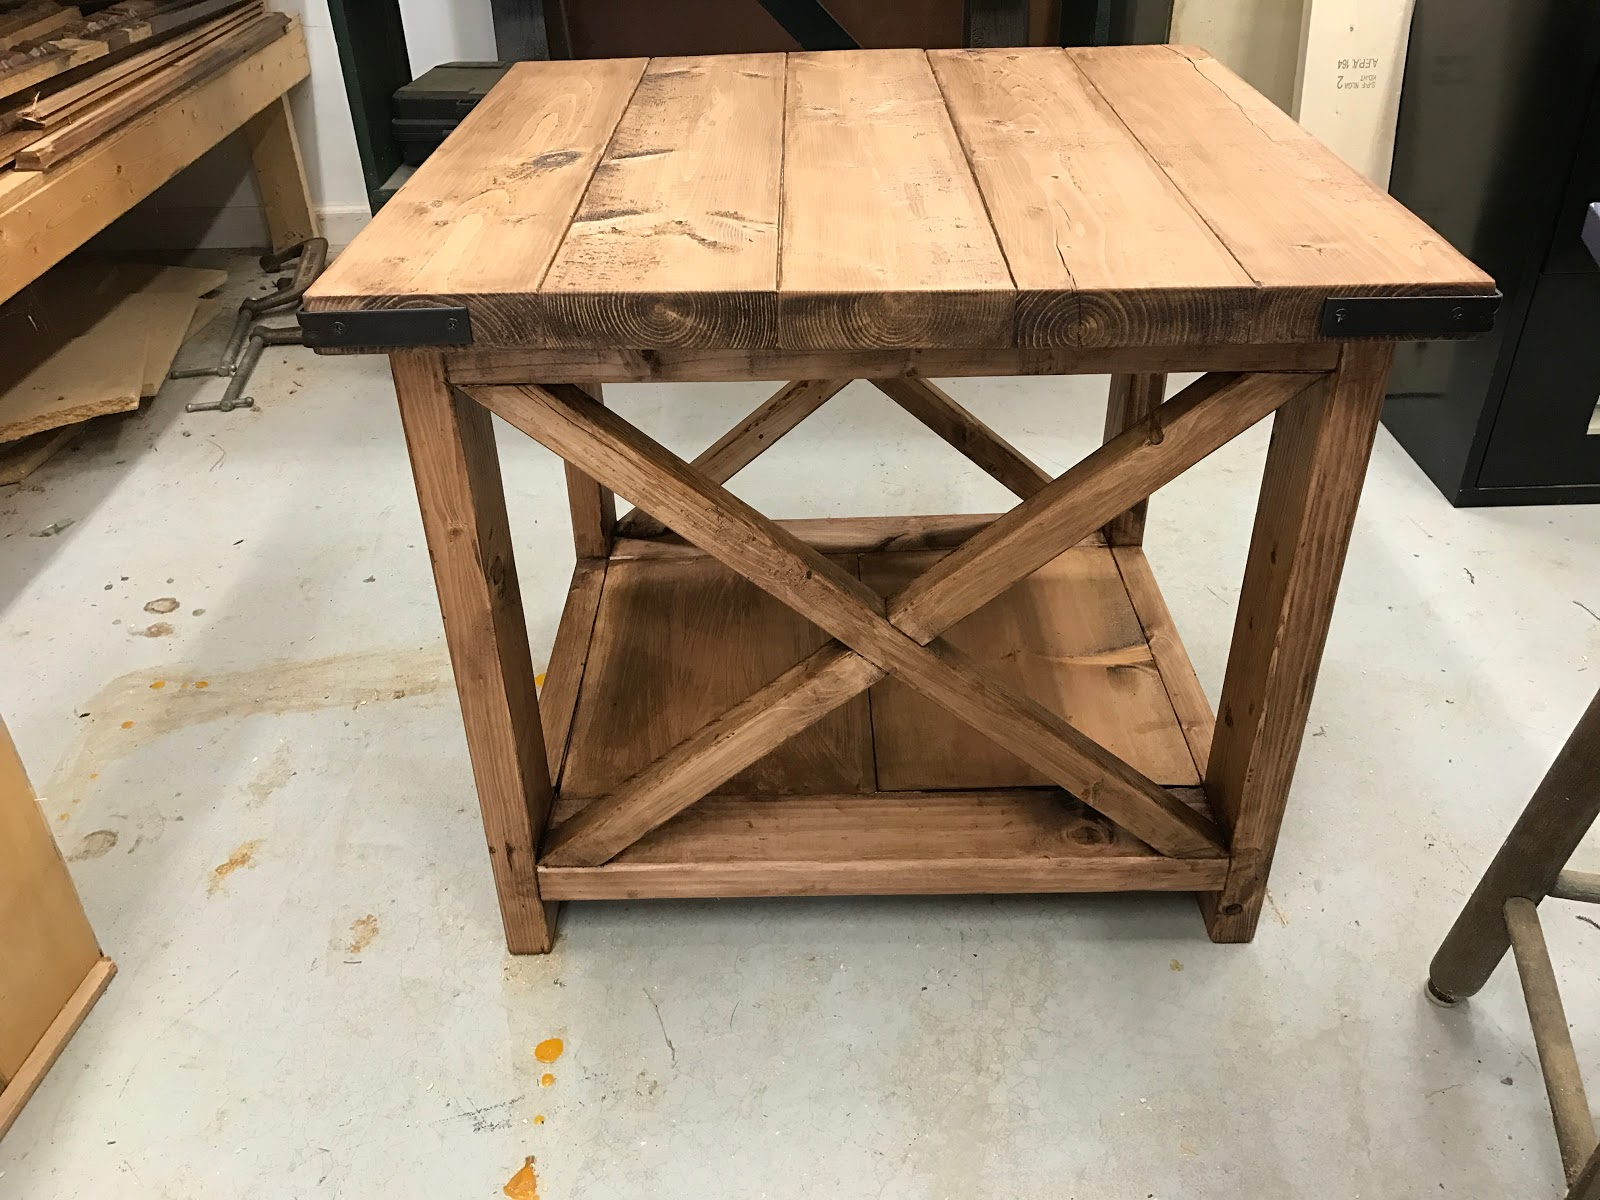 are grown ups now diy rustic end table img love the farmhouse style this and looked somewhat simple below our experience building enjoy wood stump accent bench vise hardware ikea